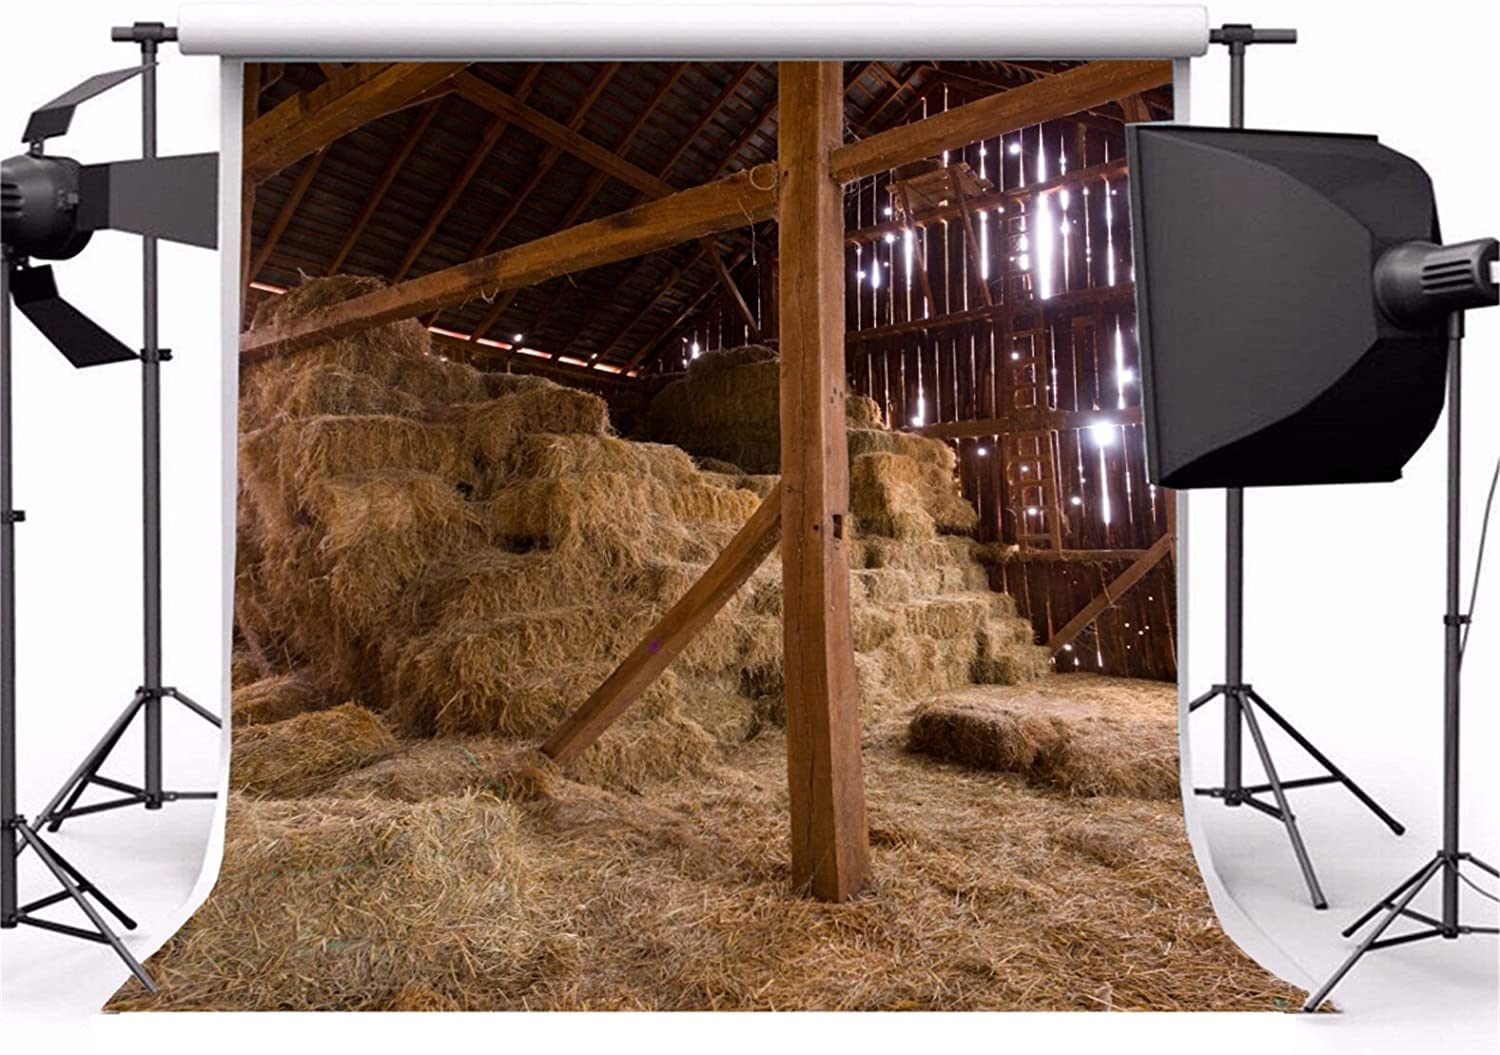 CSFOTO 10x6.5ft Old Barn Backdrop Cowboy Aged Agriculture Bale Farmhouse Rustic Farm Hay Roll Rural Countryside Photography Background Village Theme Party Photo Wallpaper